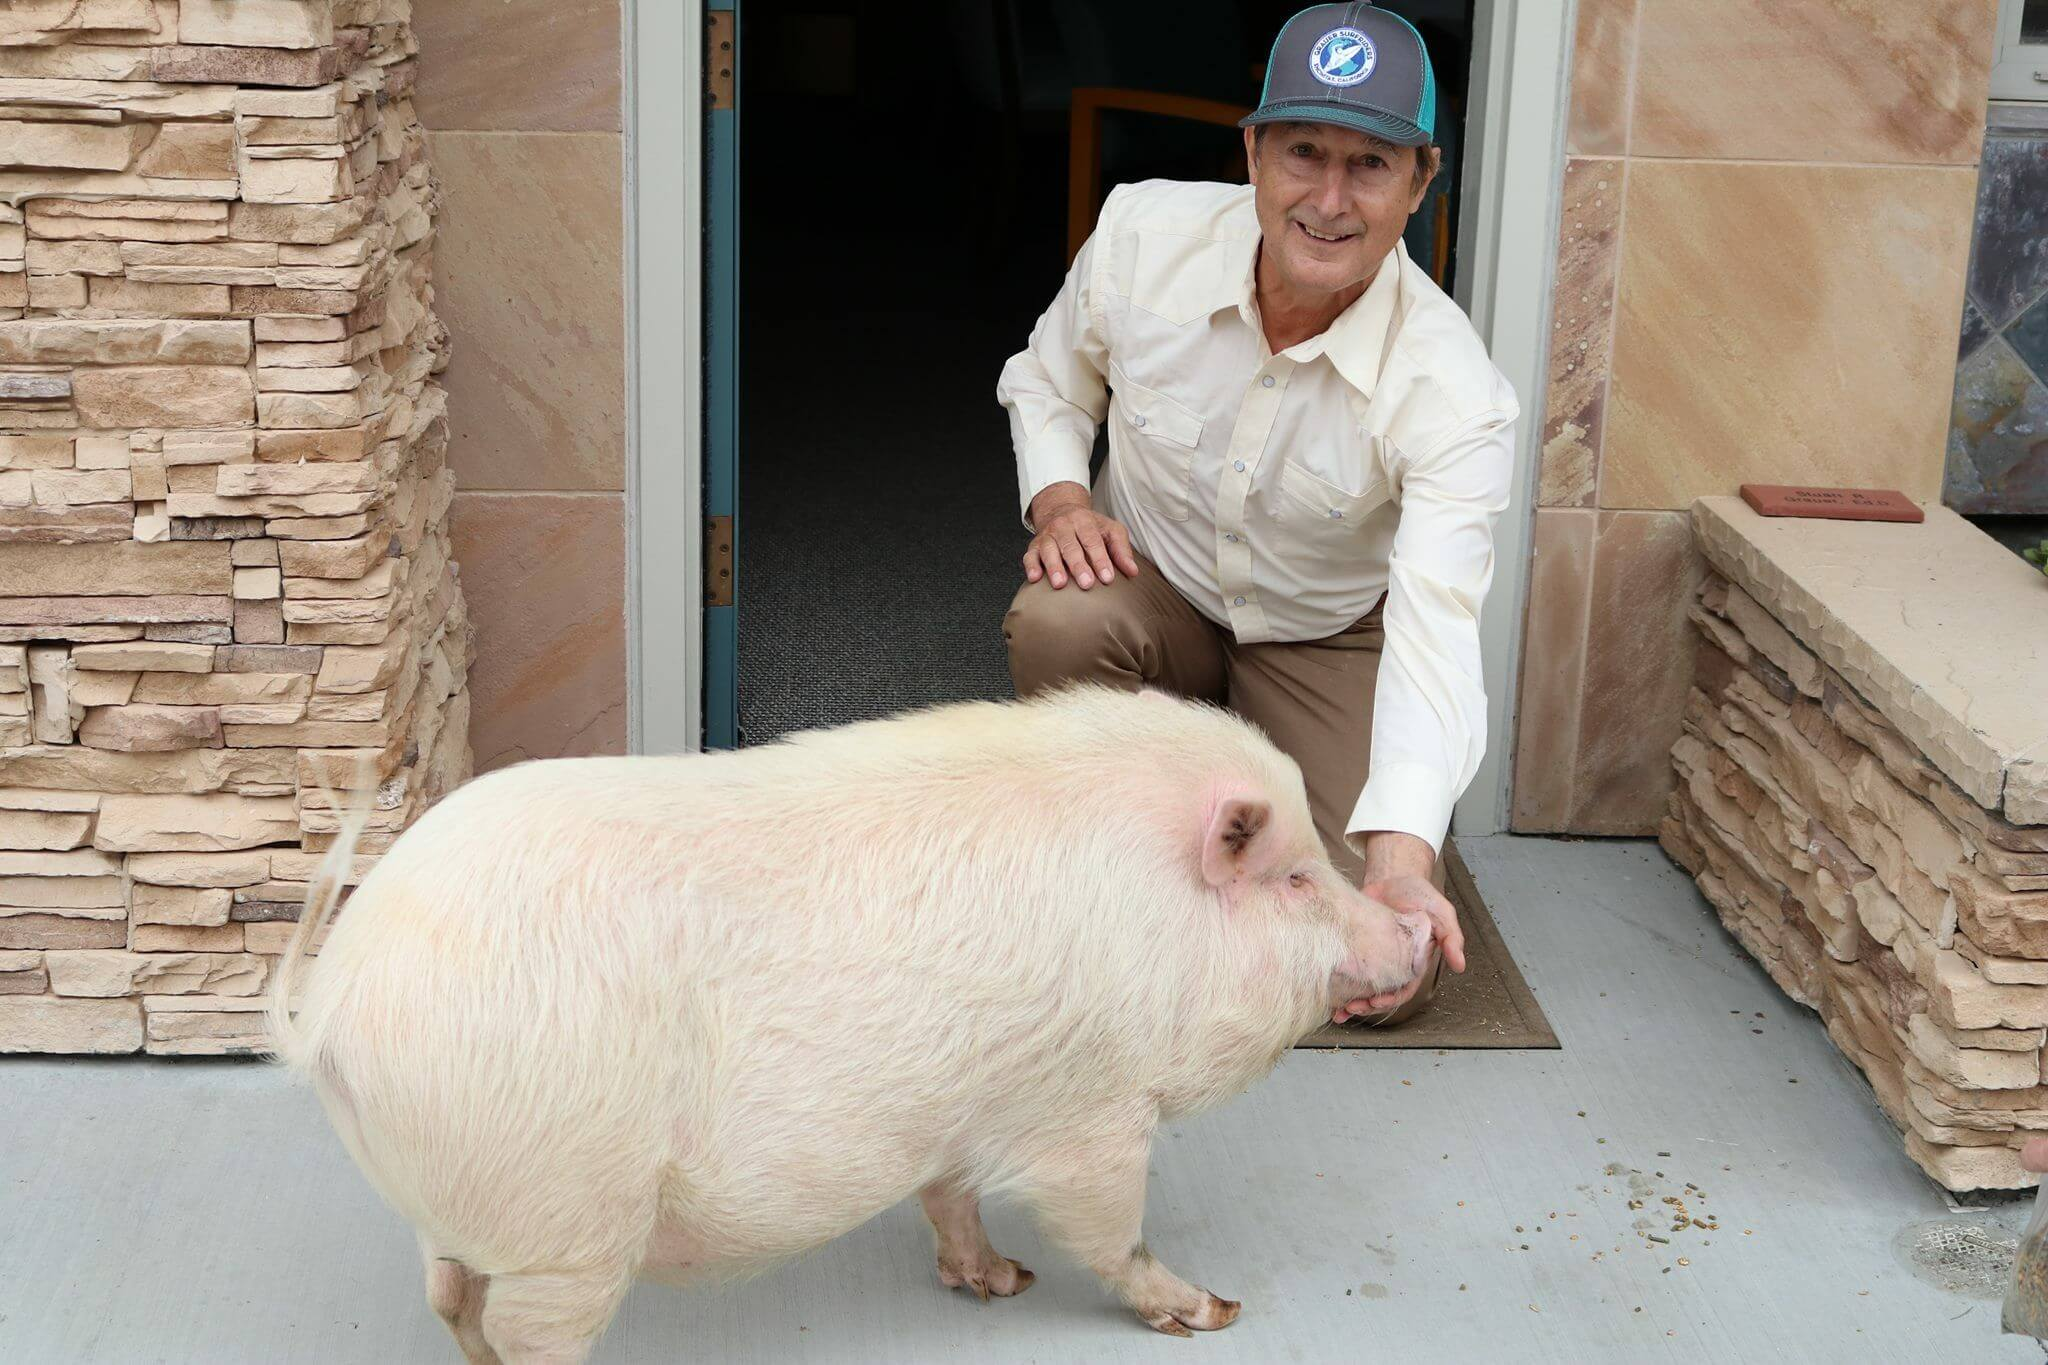 dr stuart grauer with a cute piggy friend